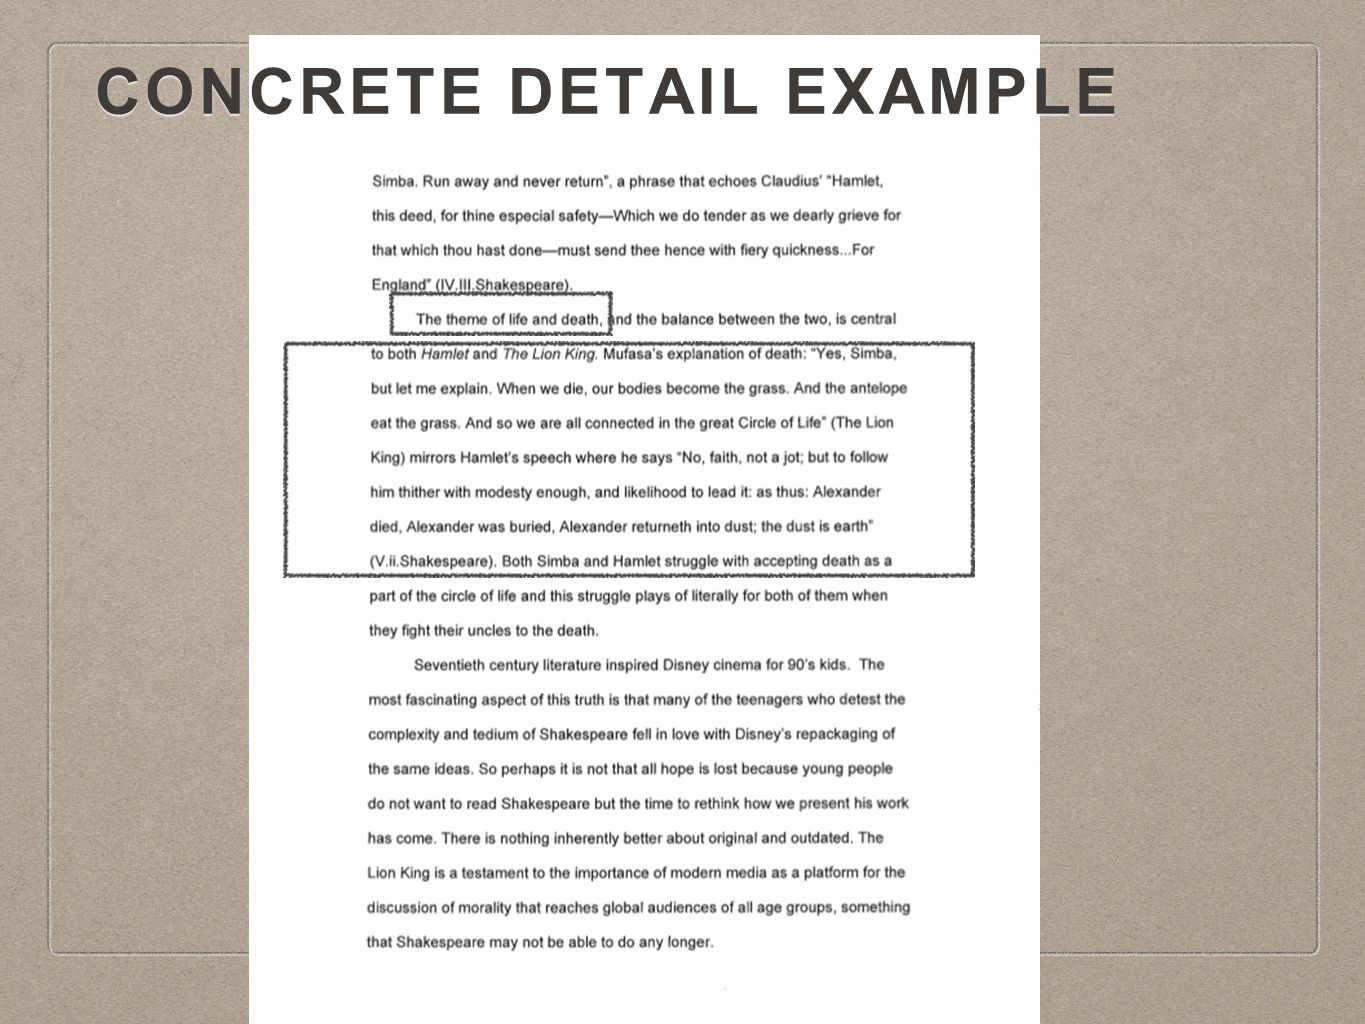 body paragraphs i can write an introduction but i don t know what 9 concrete detail example